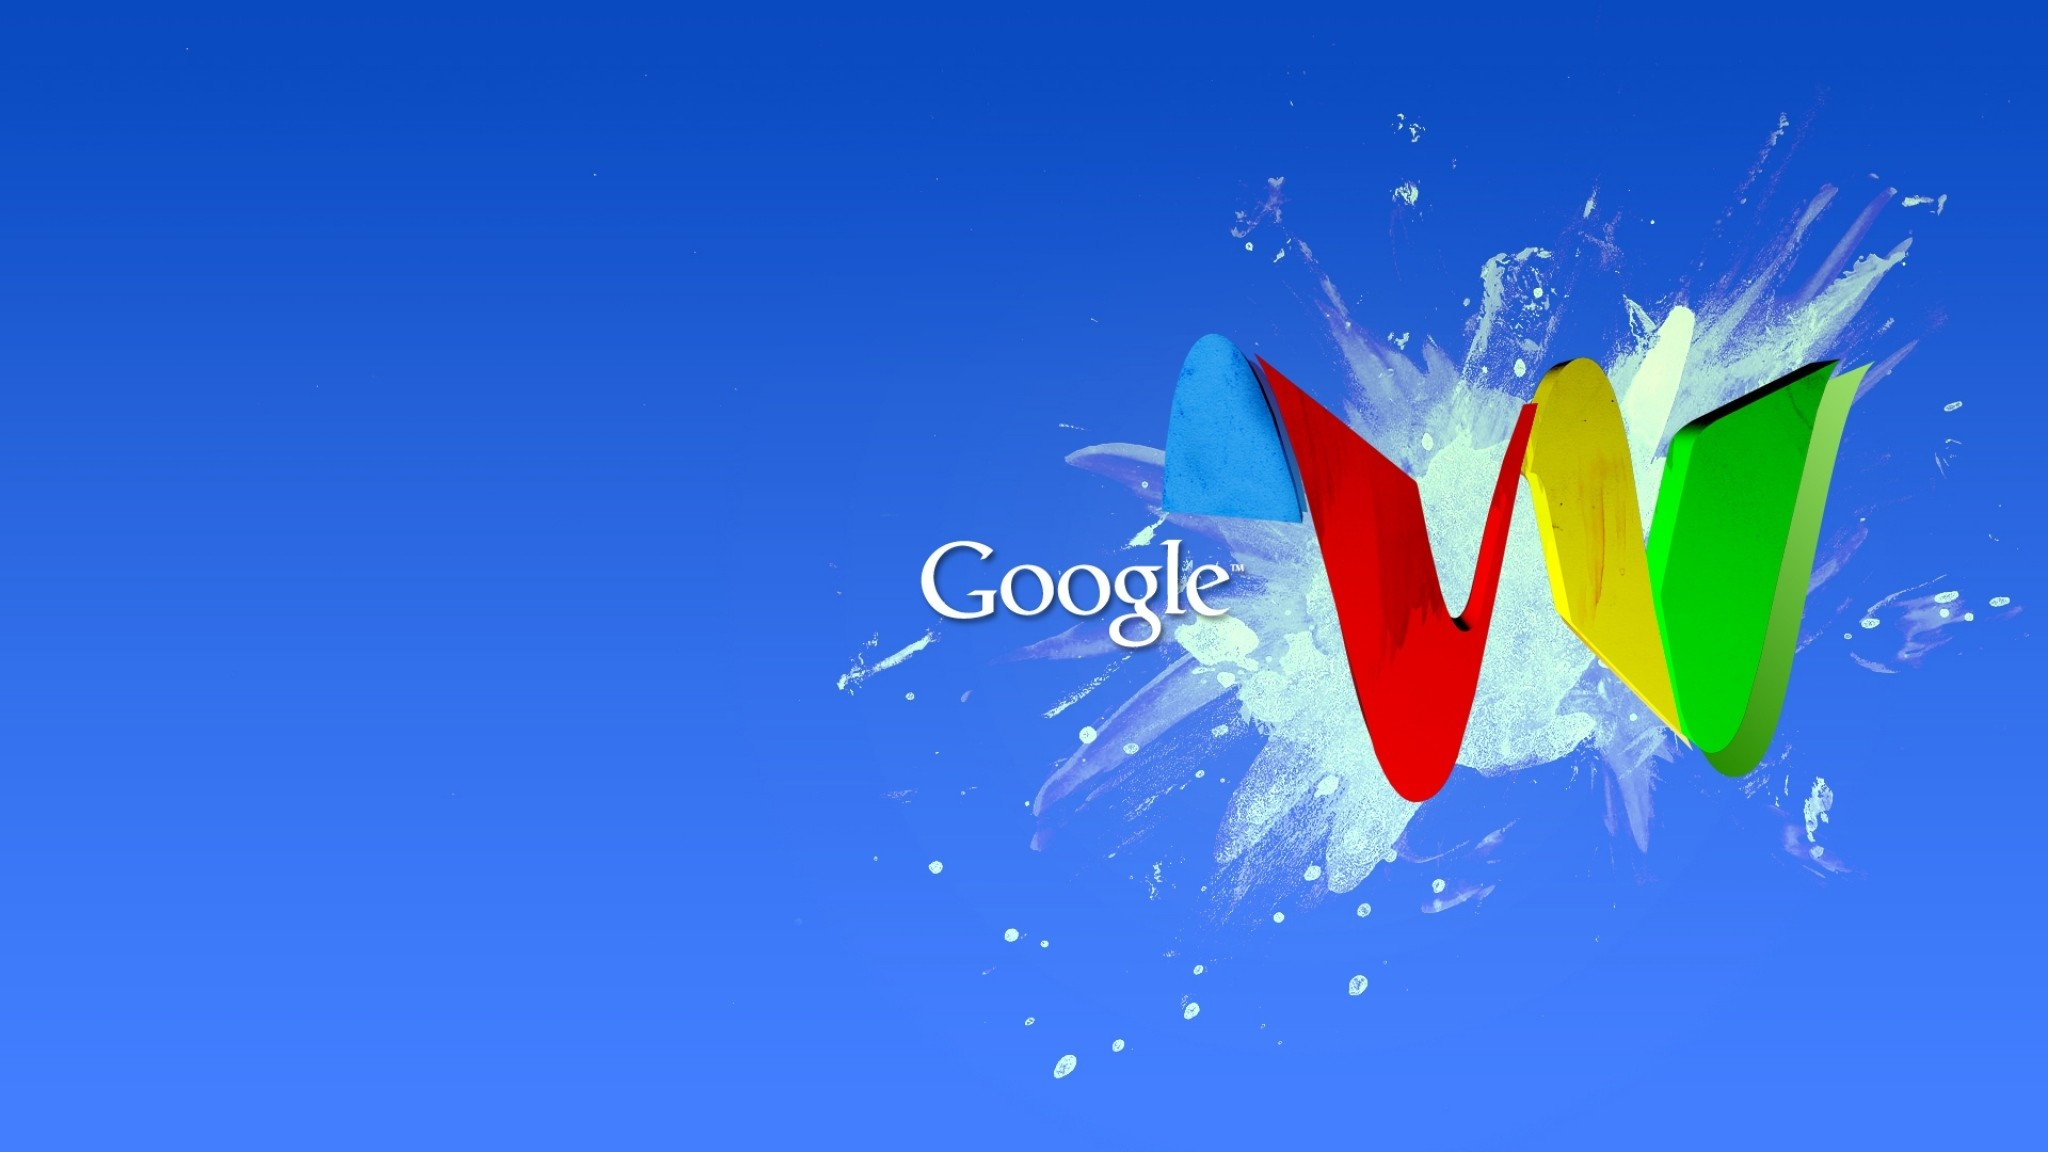 2048x1152 Preview wallpaper google, blue, red, yellow, green